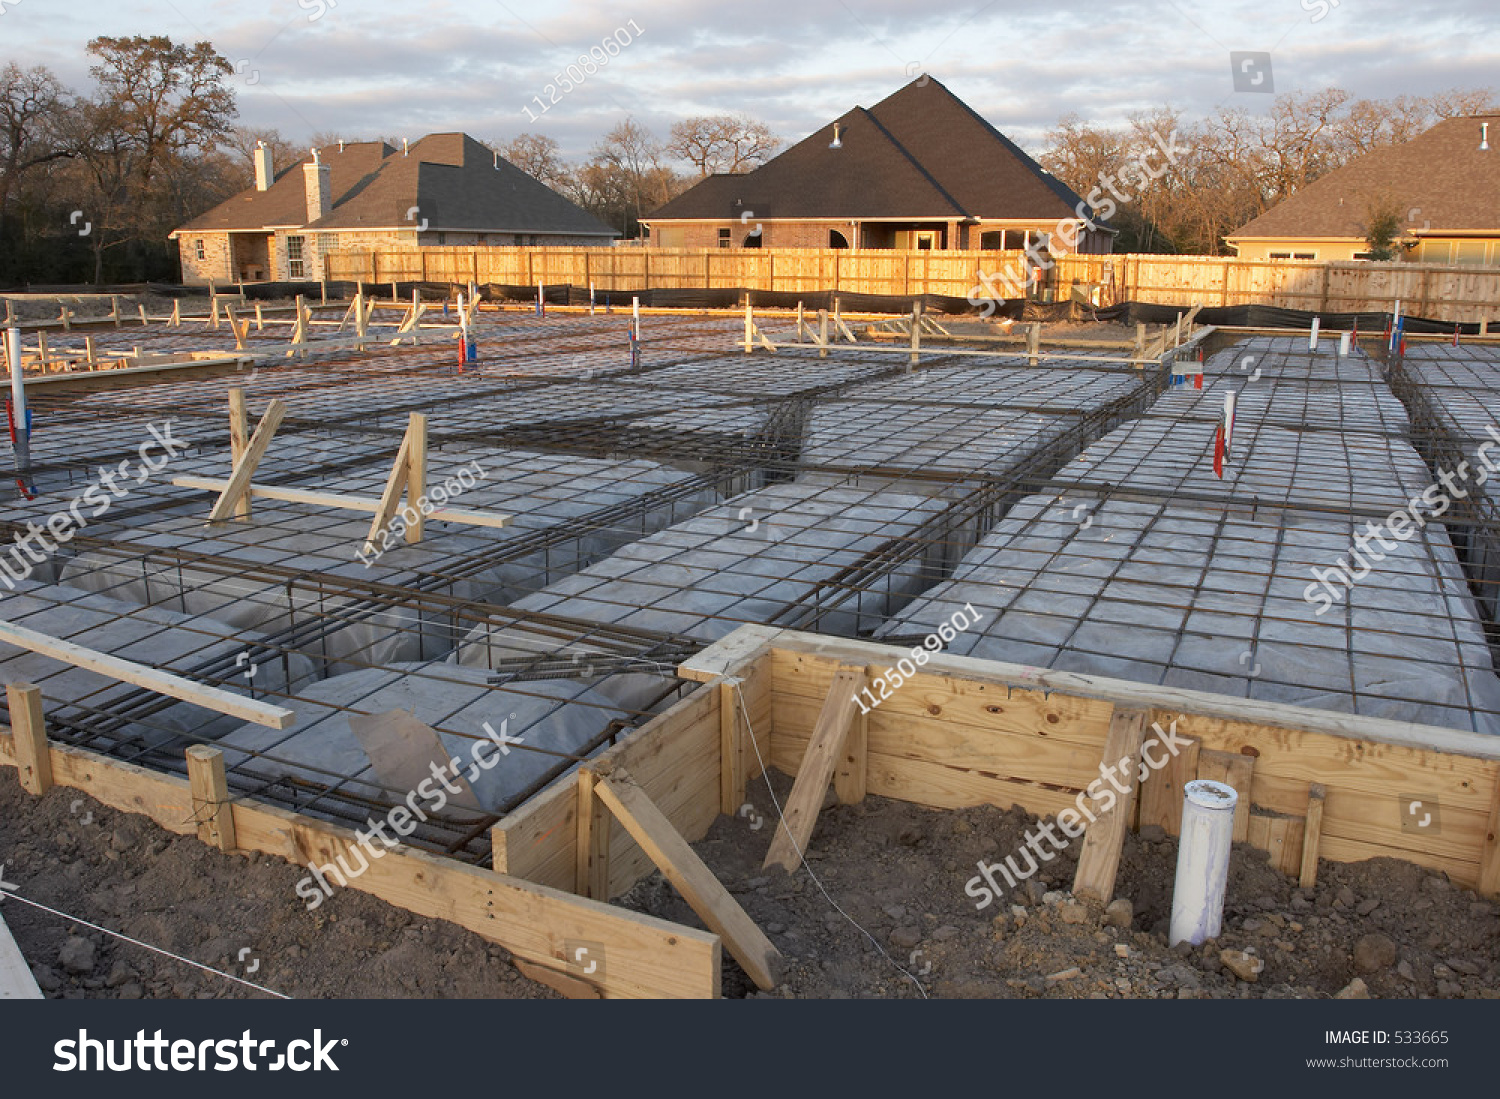 Trenches rebar prep work house foundation stock photo for How do foundations work